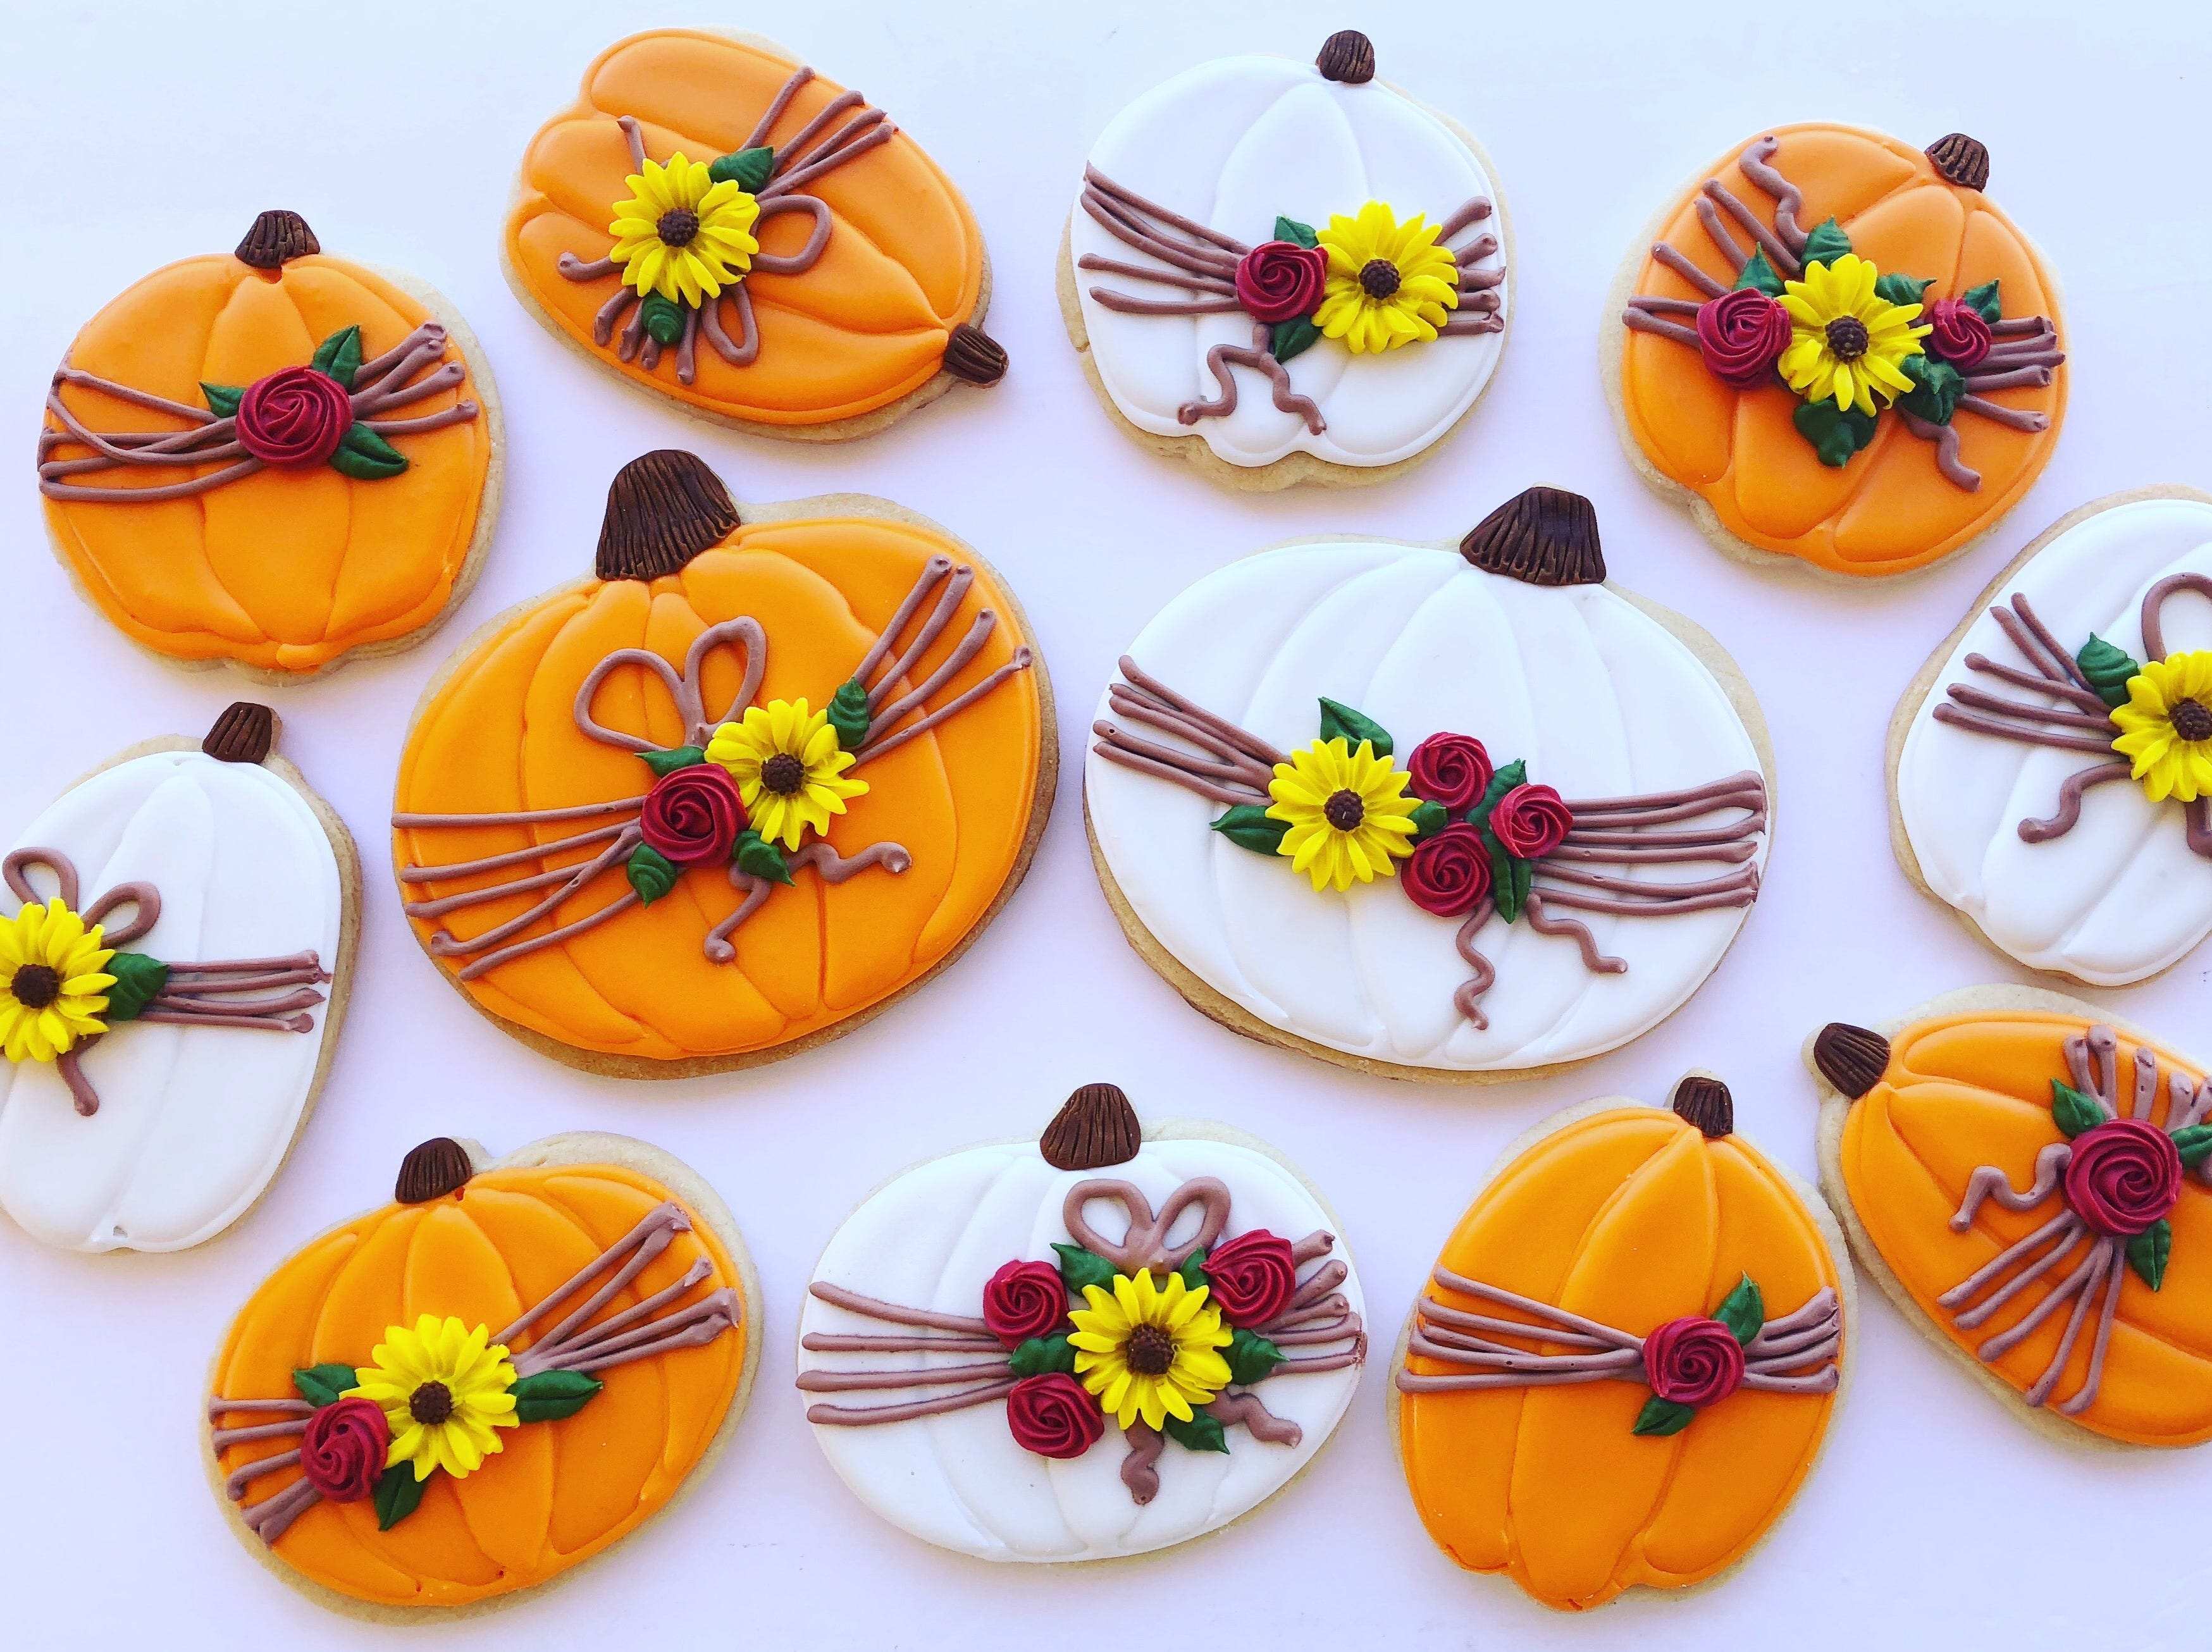 Pumpkin cookies with a floral design created by Maricopa baker Julia Perugini.